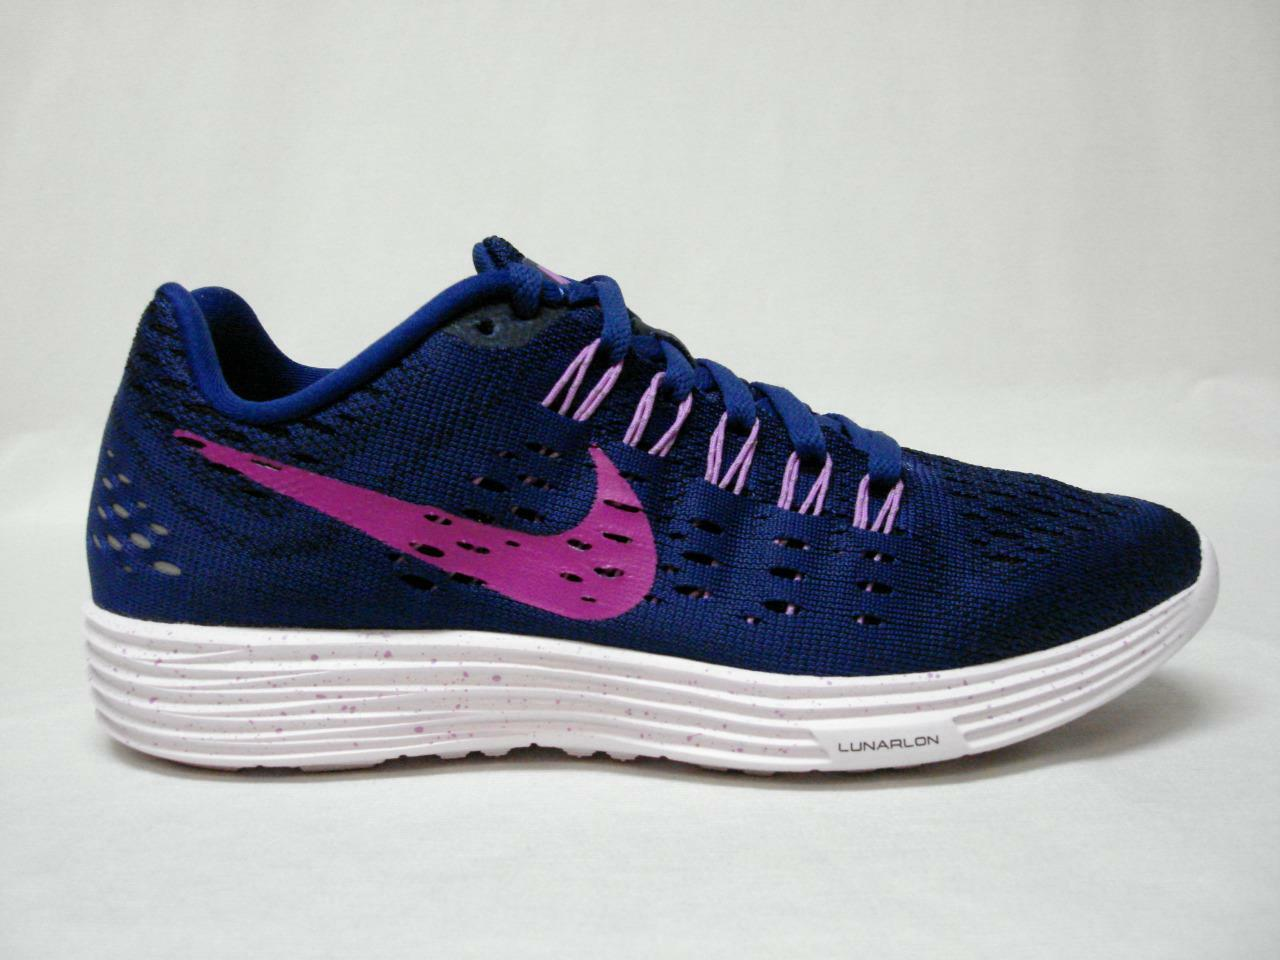 NIB NIKE LUNARTEMPO WOMEN'S SHOE'S 8.5 ROYAL BLUE~AWESOME SHOE'S MSRP $110